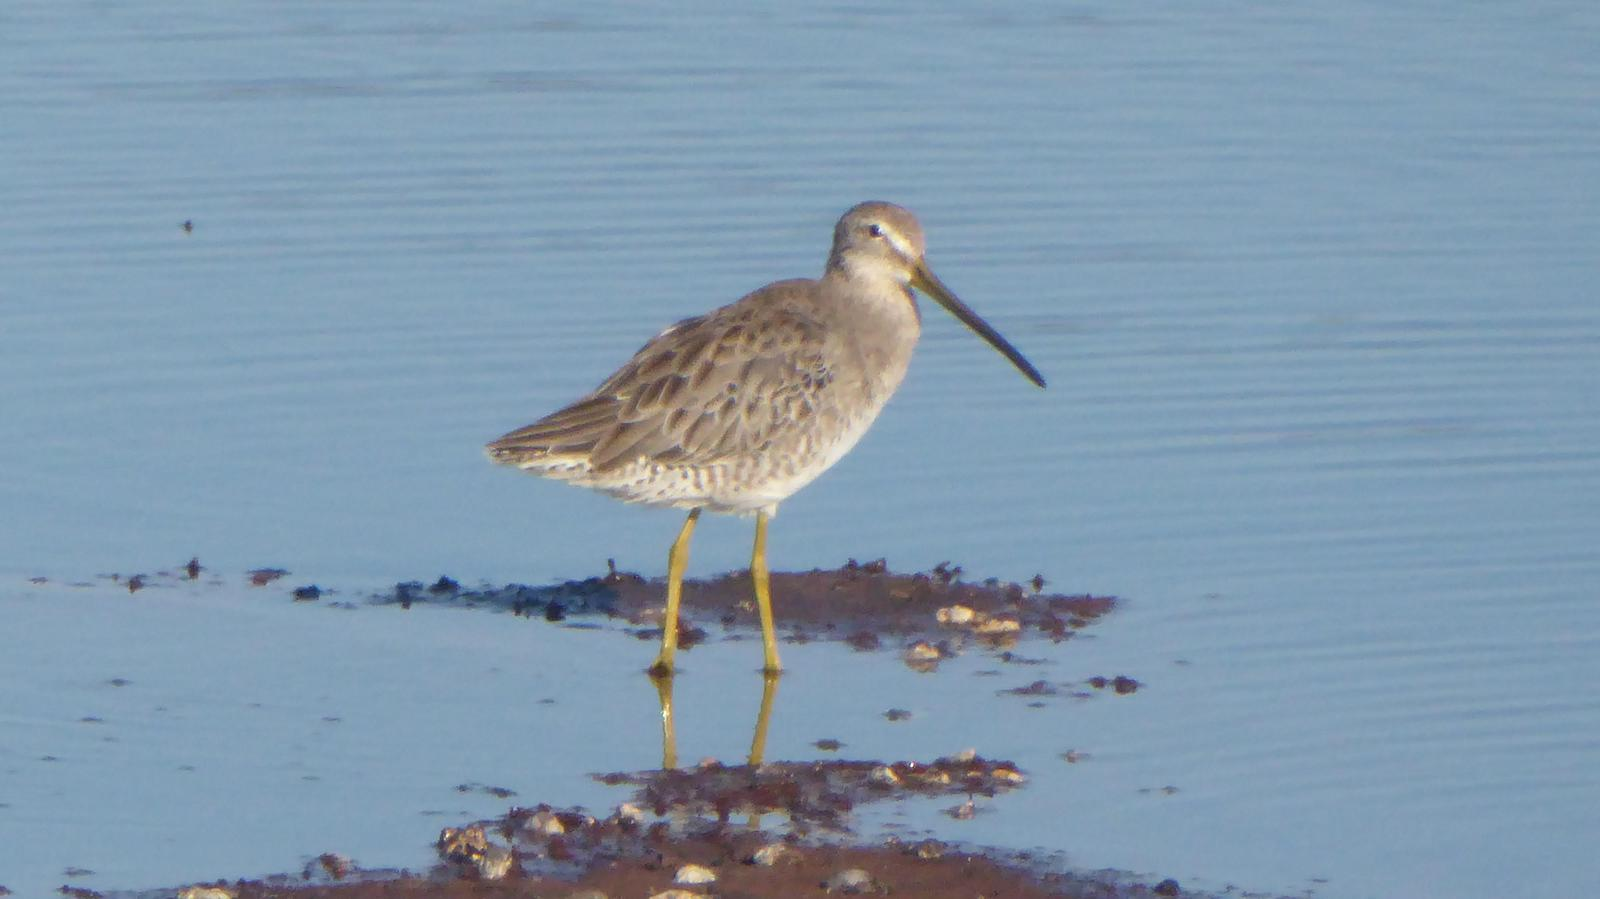 Long-billed Dowitcher Photo by Daliel Leite